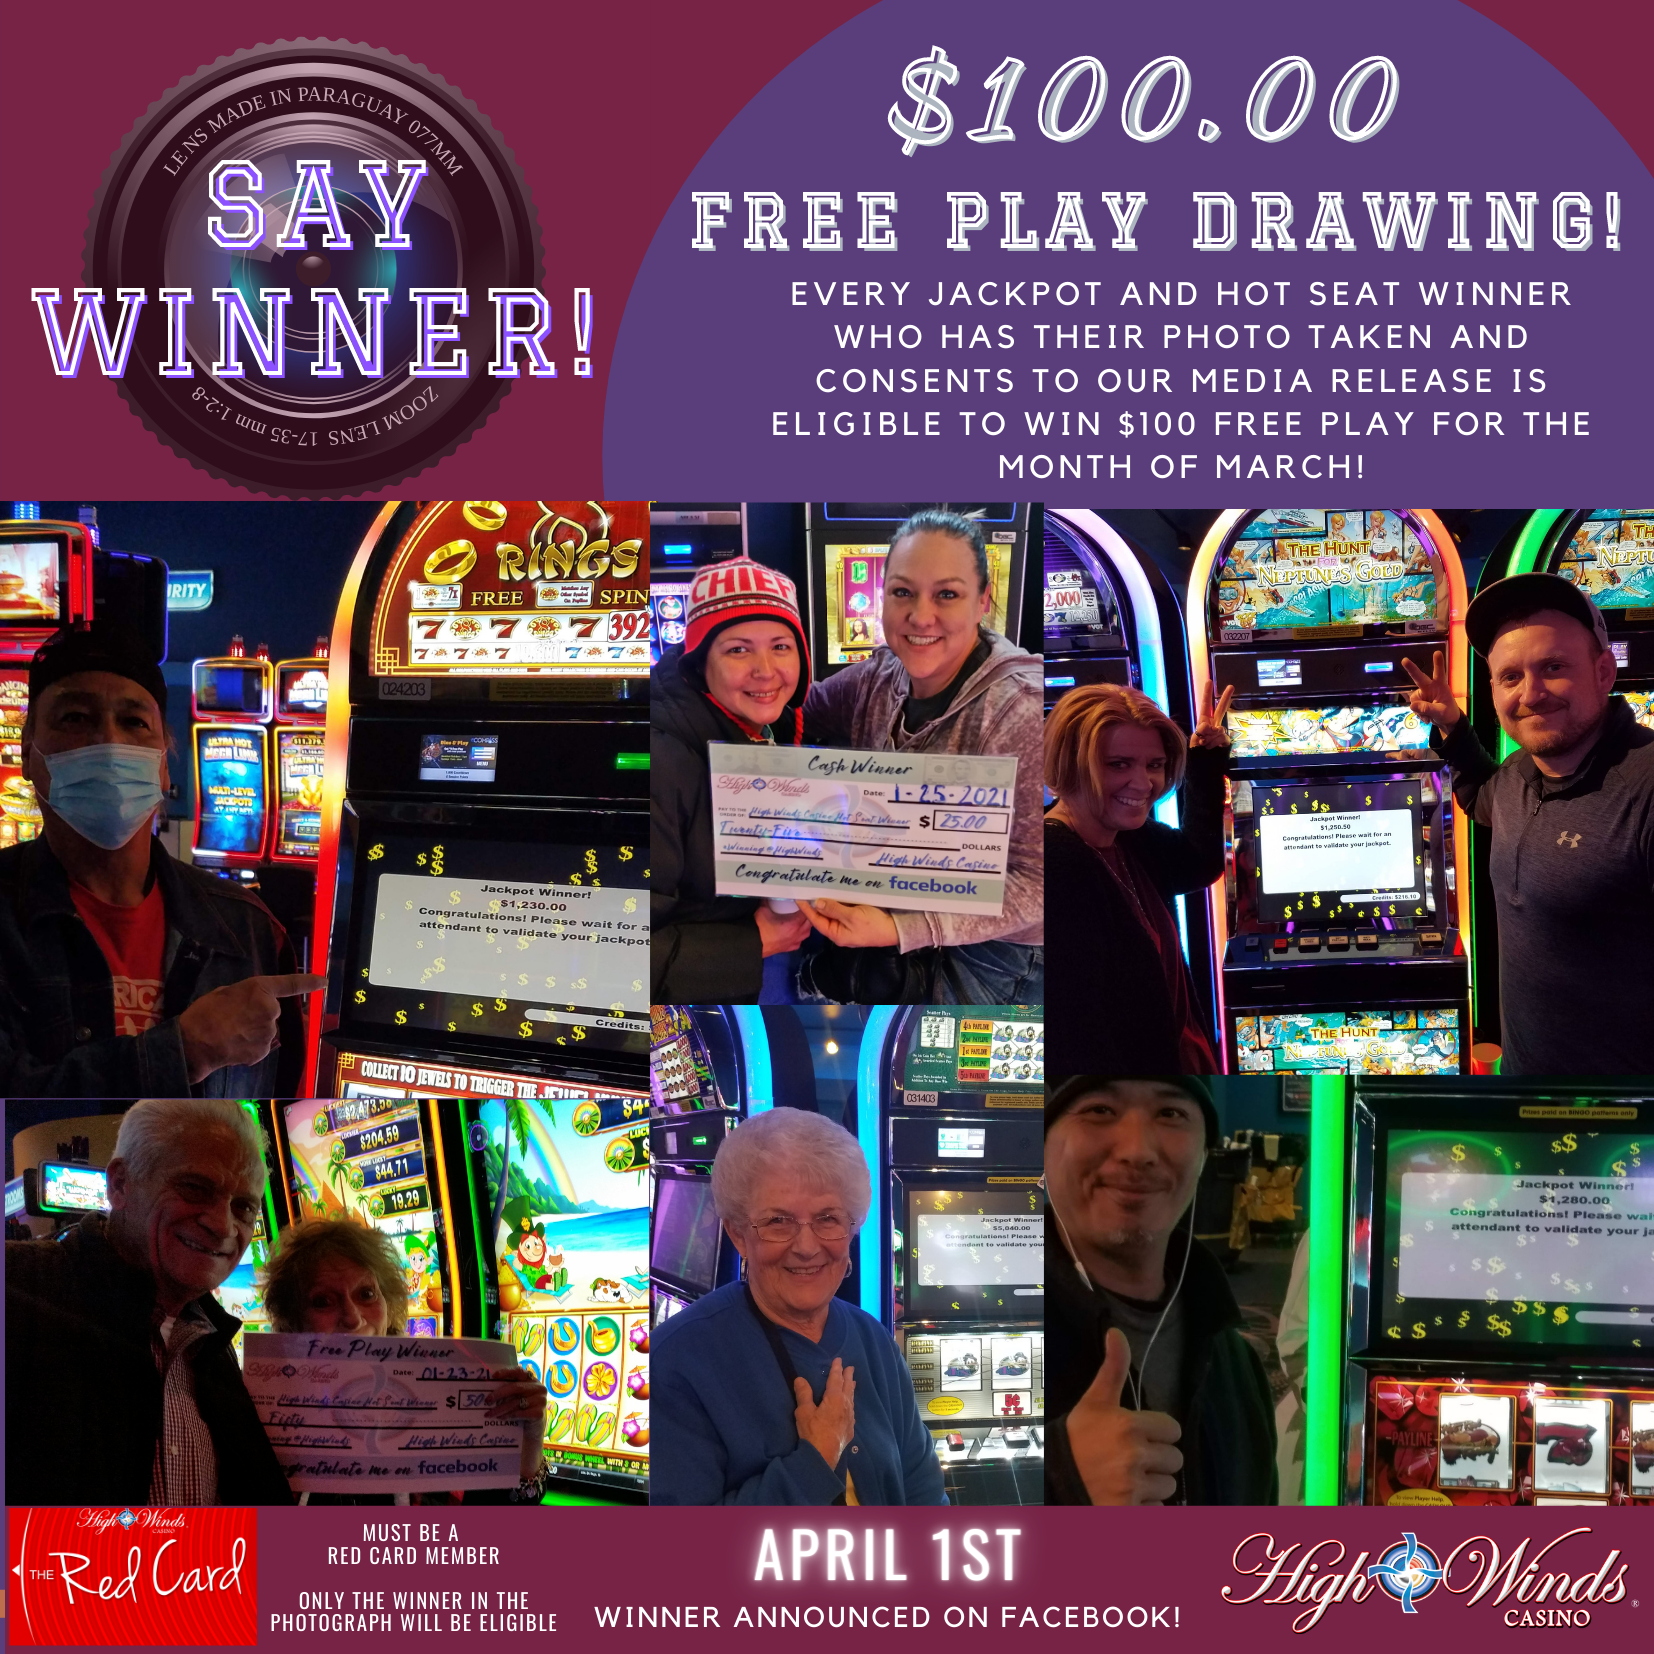 Say Winner! Jackpot and Hot Seat Winner who consent to their pictures being taken are entered into a drawing for $100 Free Play!